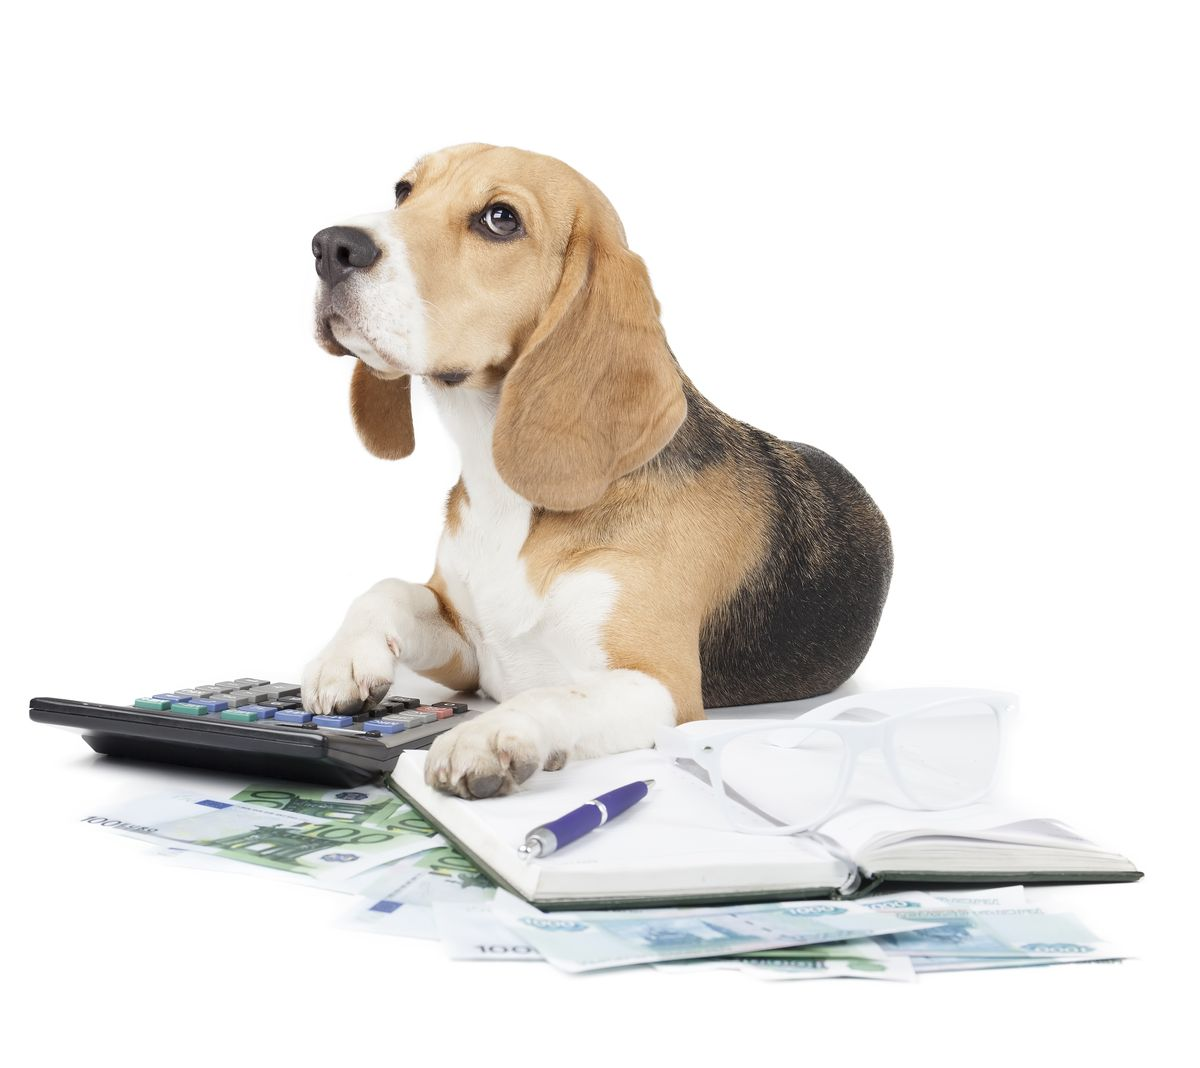 Pet Insurance - Helping Our Pets Through an Economic Crisis